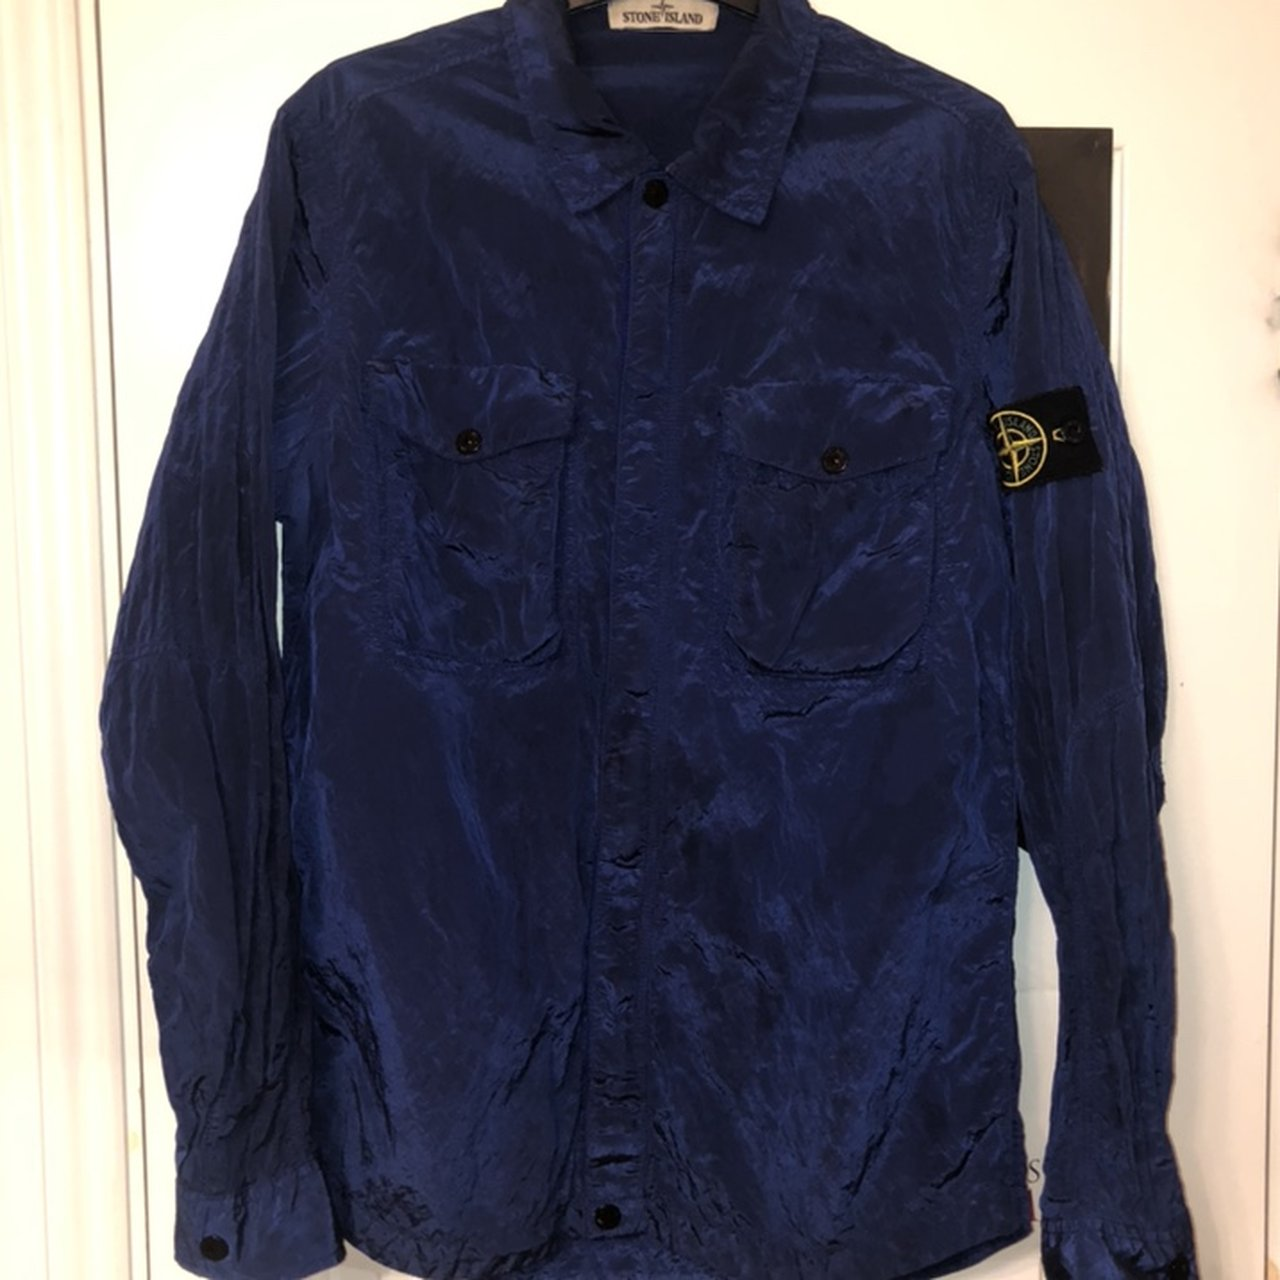 9e379dbd940 Stone Island Shimmer Overshirt Royal Blue Size. Sold. £185. Barbour Bucket  hat Great condition Size Medium